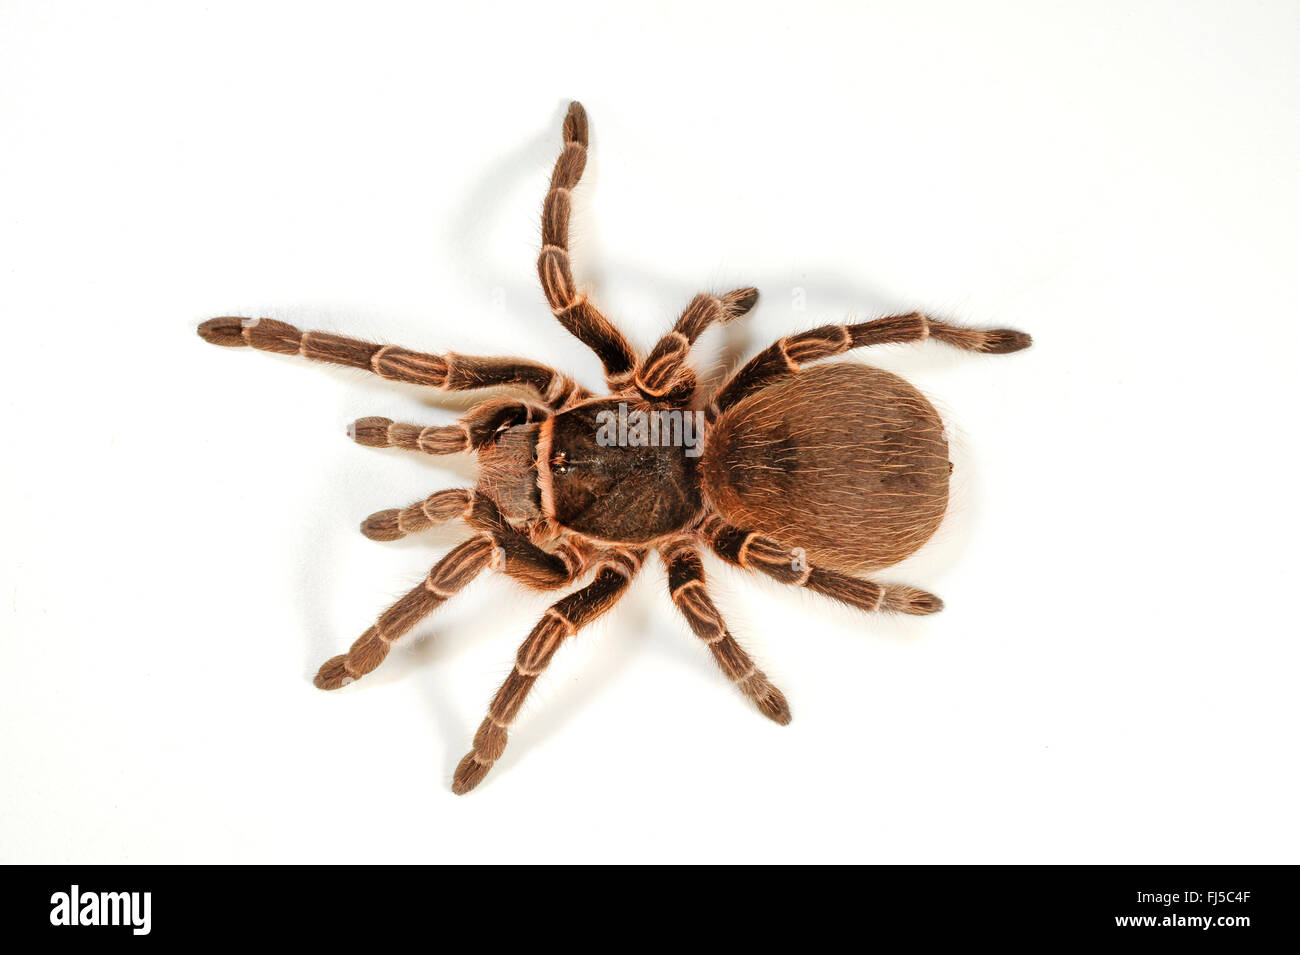 Bird spider (Acanthoscurria cordubensis), cut-out - Stock Image